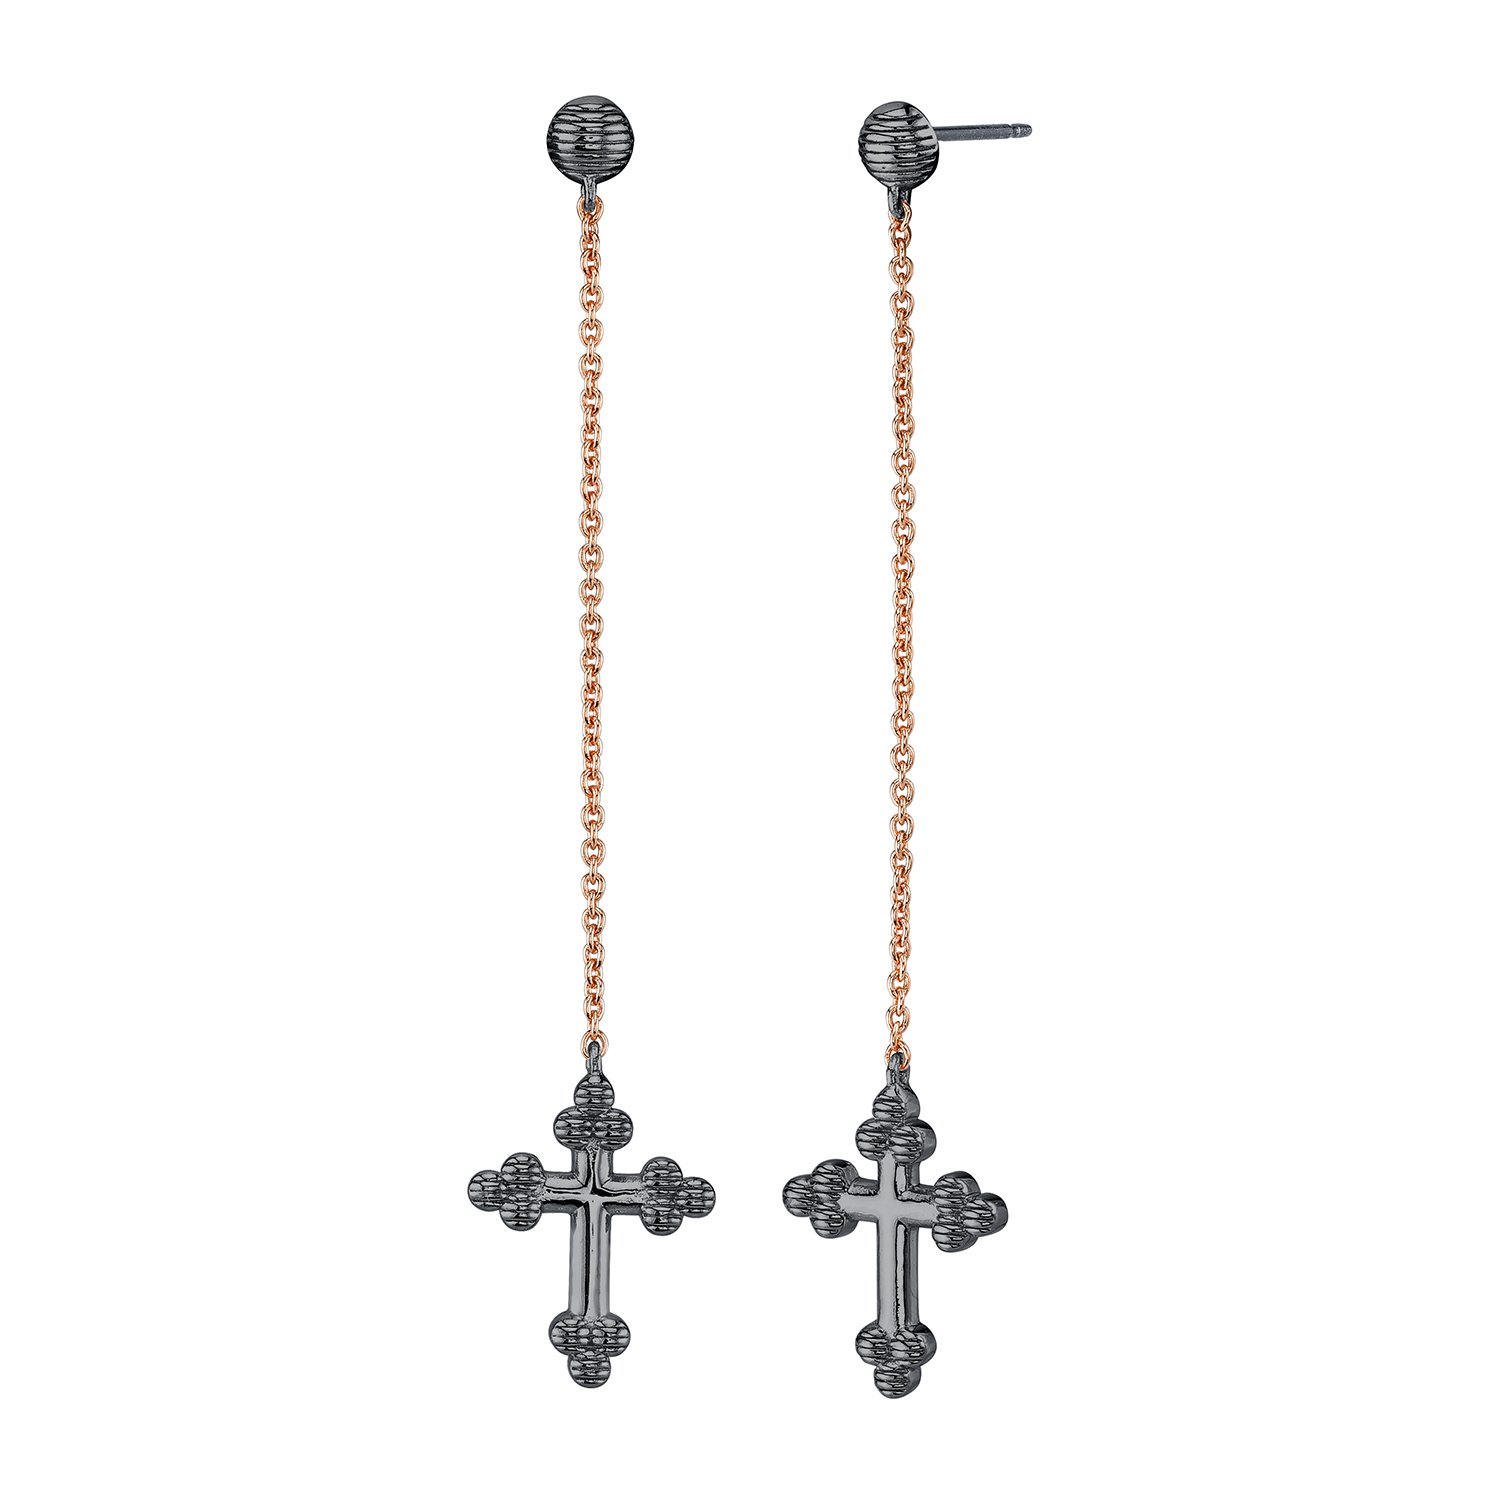 CHARLIZE GADBOIS 925 Sterling Silver Cross Drop Dangle Earrings, Gunmetal Nano Coated & Rose Gold Plated, Hypoallergenic